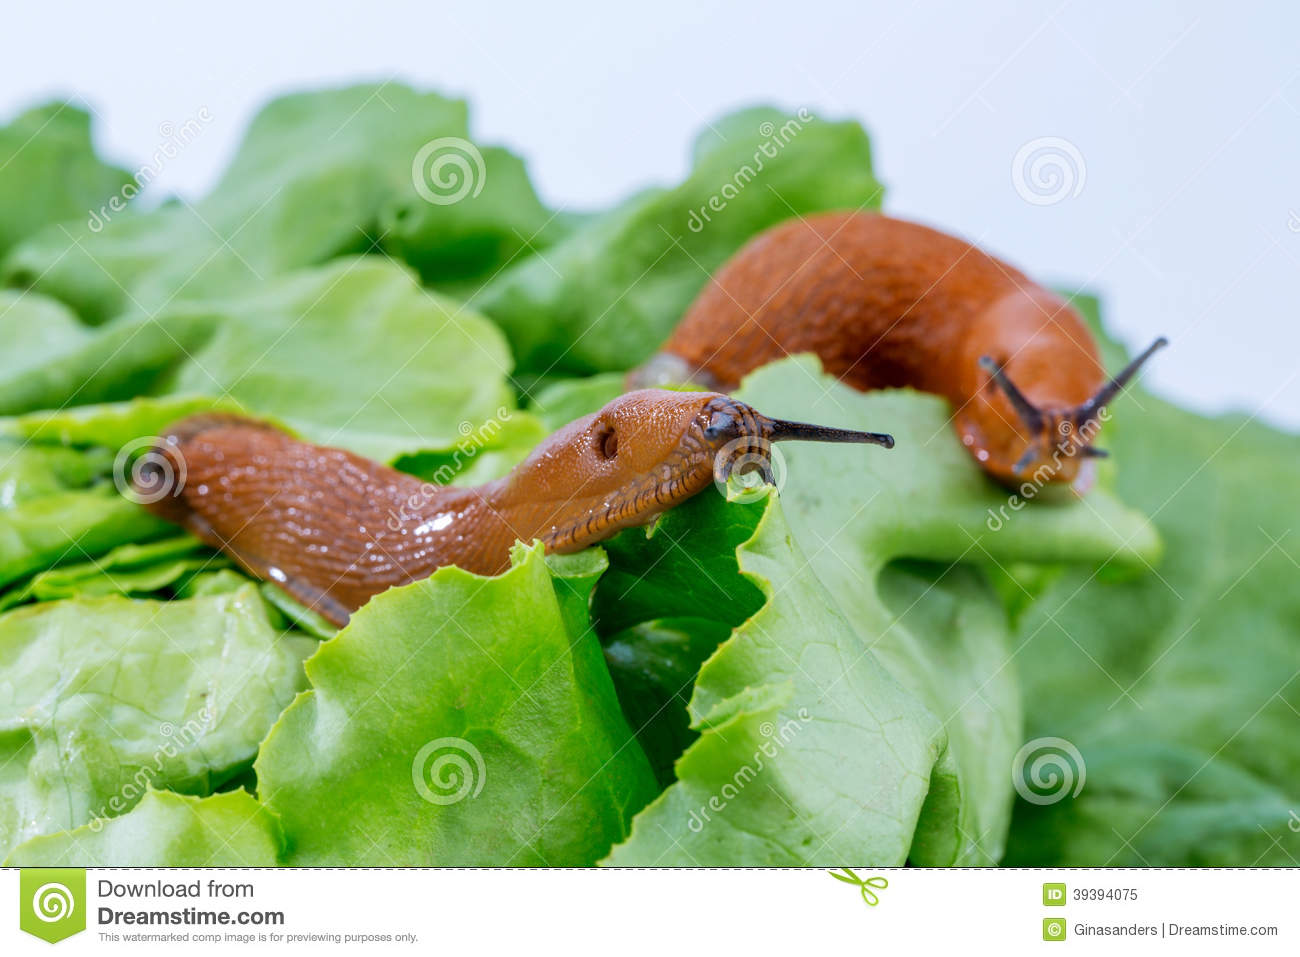 Snail plage royalty free stock image for Caracol de jardin que come